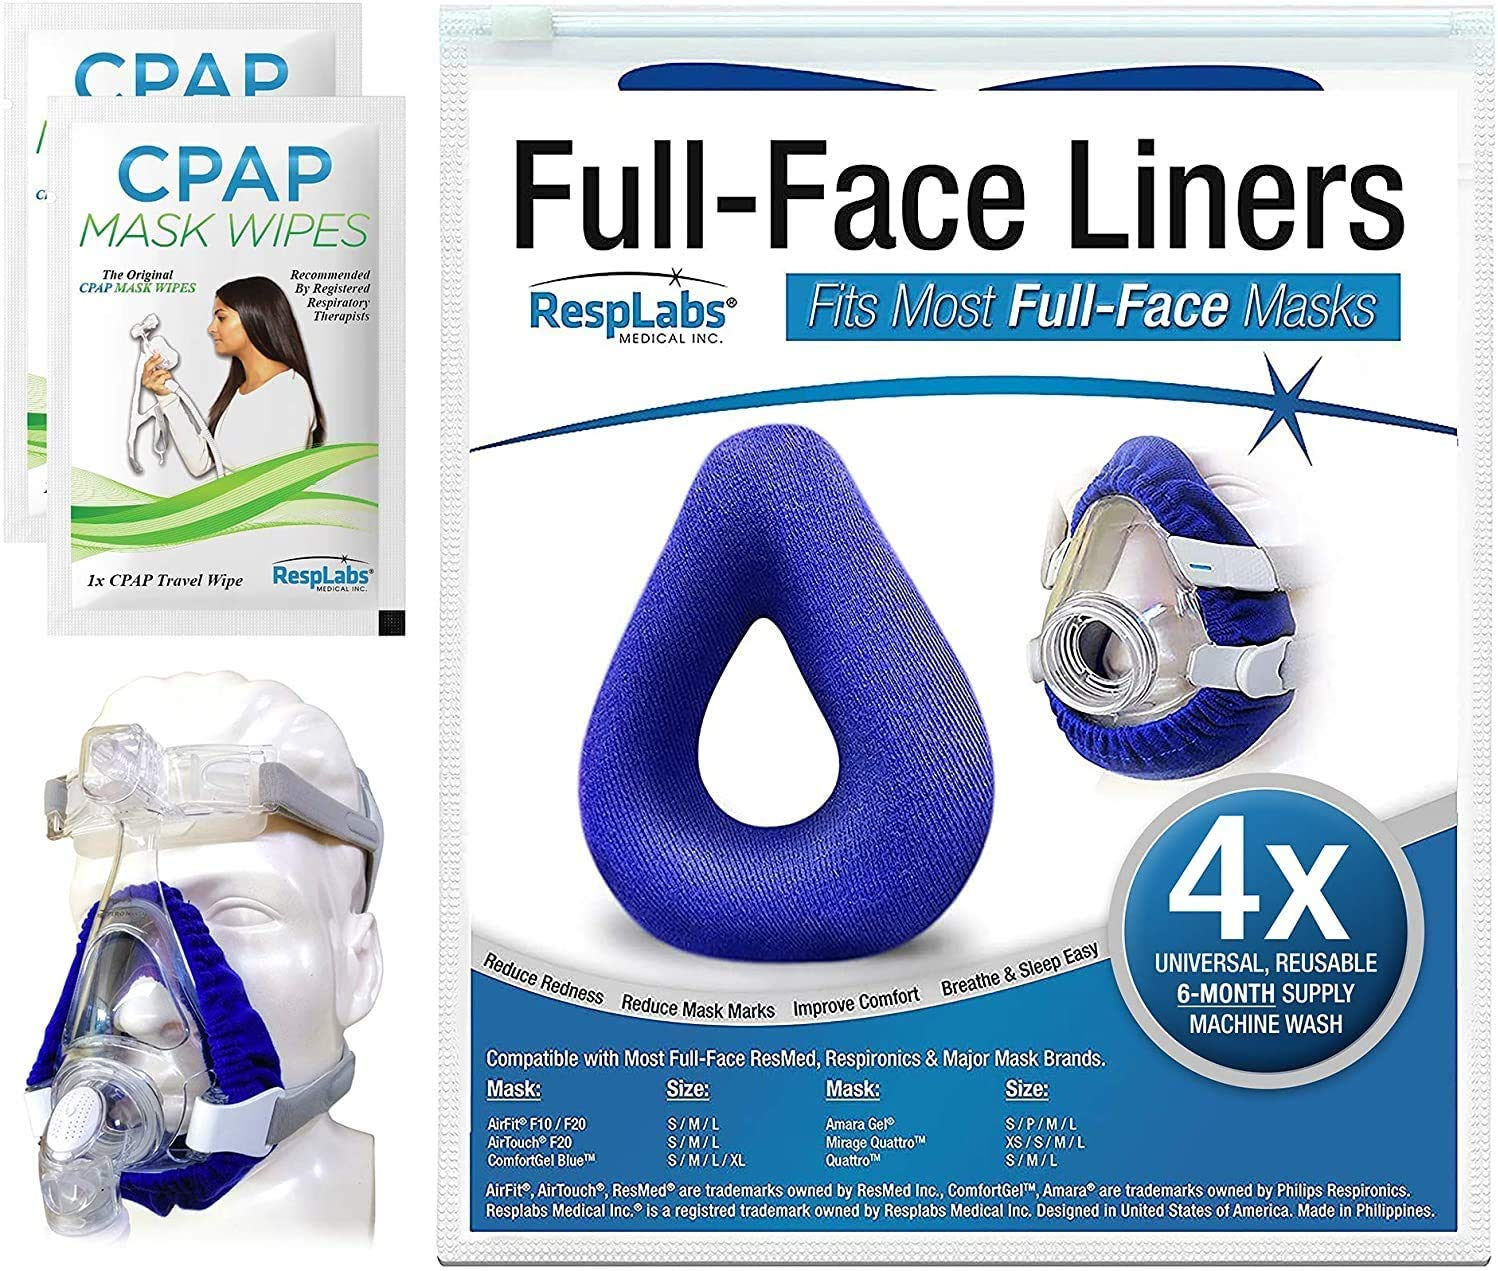 RespLabs CPAP Mask Liners for Full Face Masks - Moisture Wicking, Pressure Reducing, Comfort Enhancing. Super Soft, Washable, Cotton Covers - Universal 4 Pack.